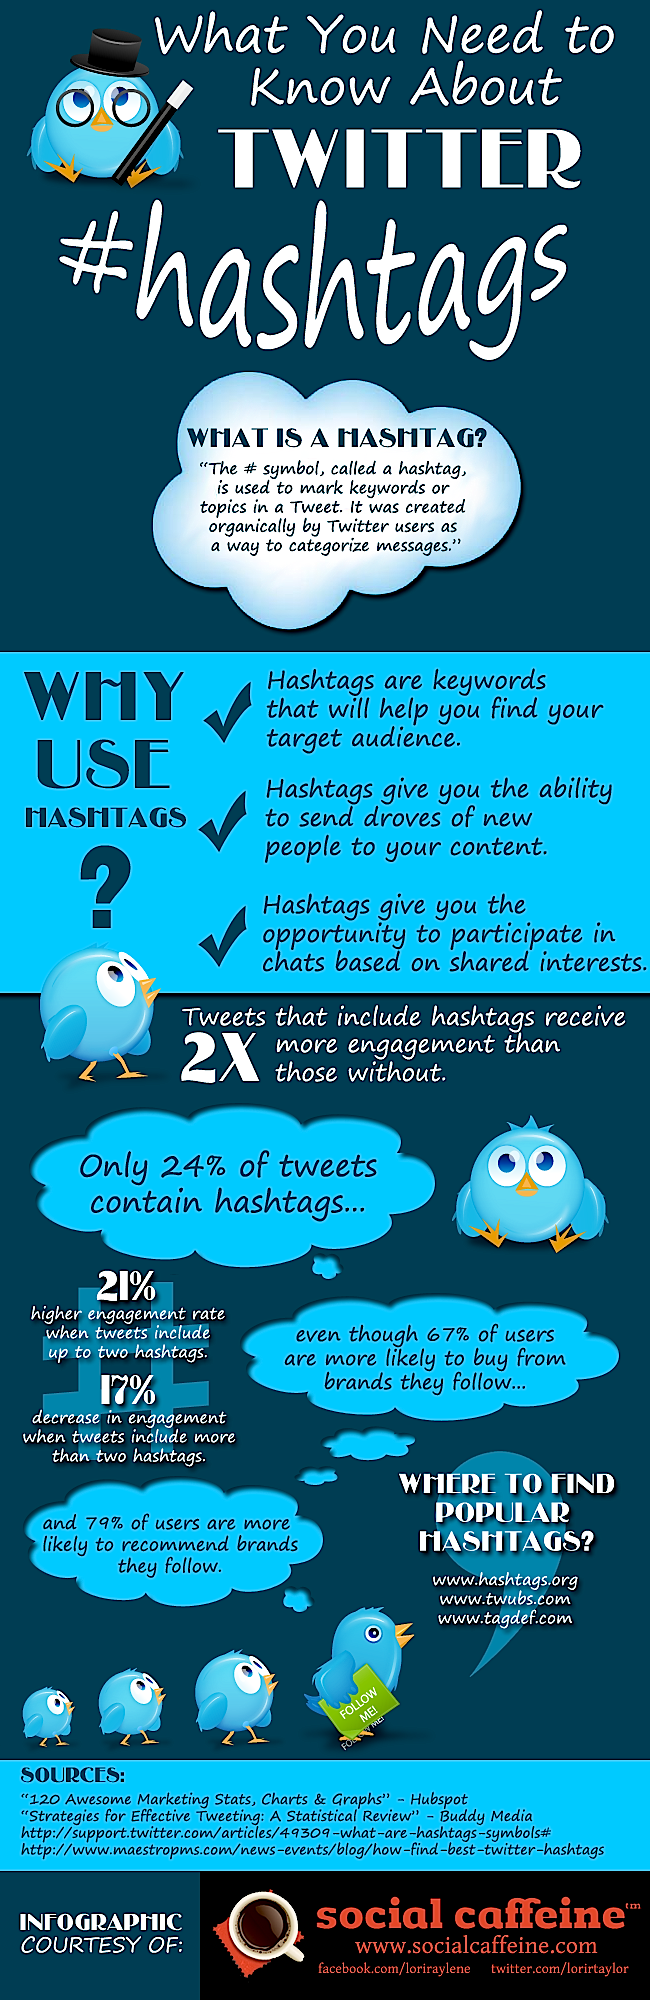 twitter-hashtags-power-guide-infographic